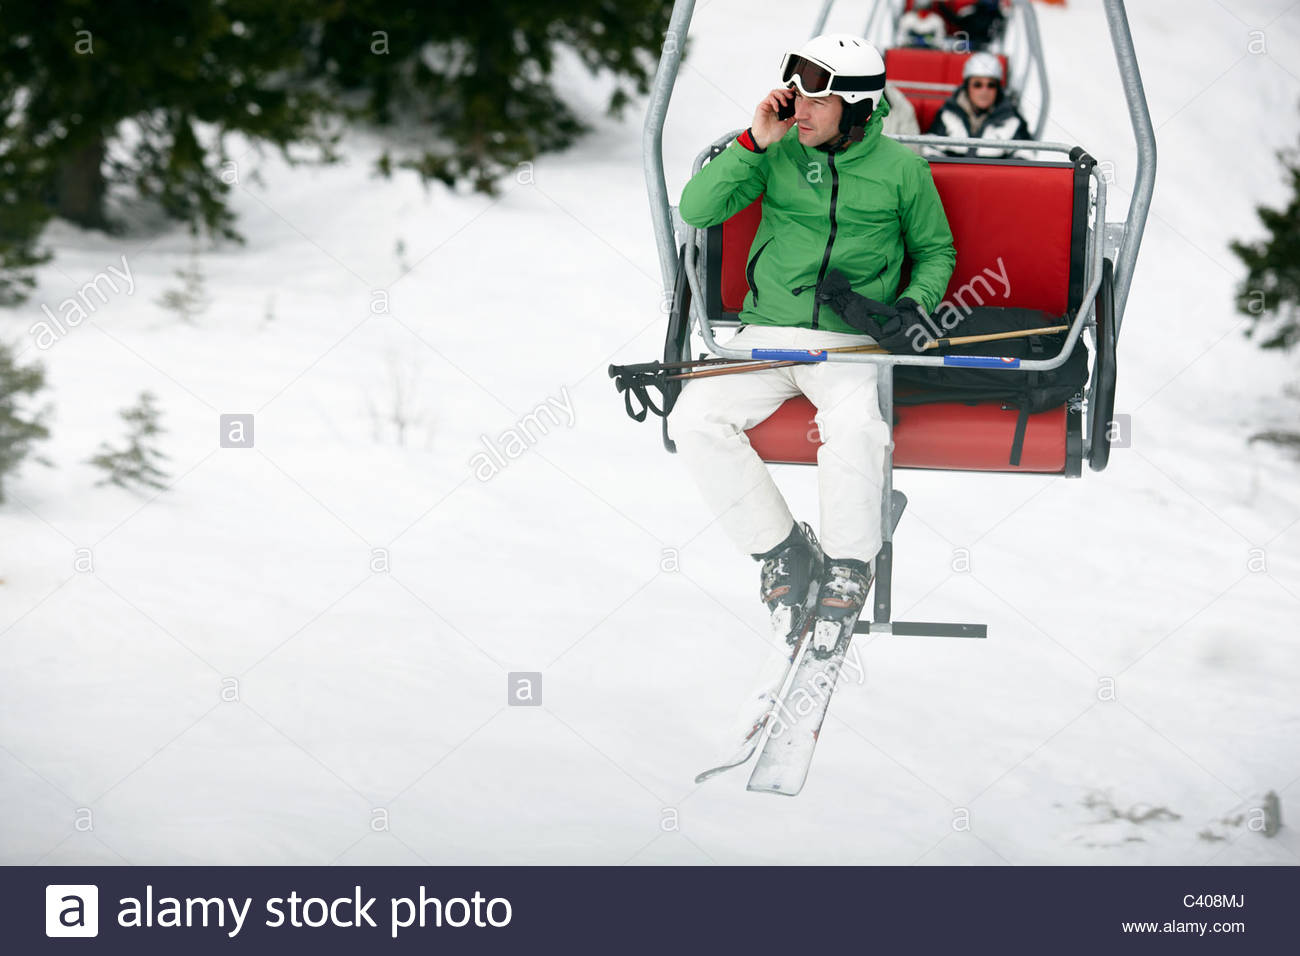 Man in Chairlift with Cellphone - Stock Image